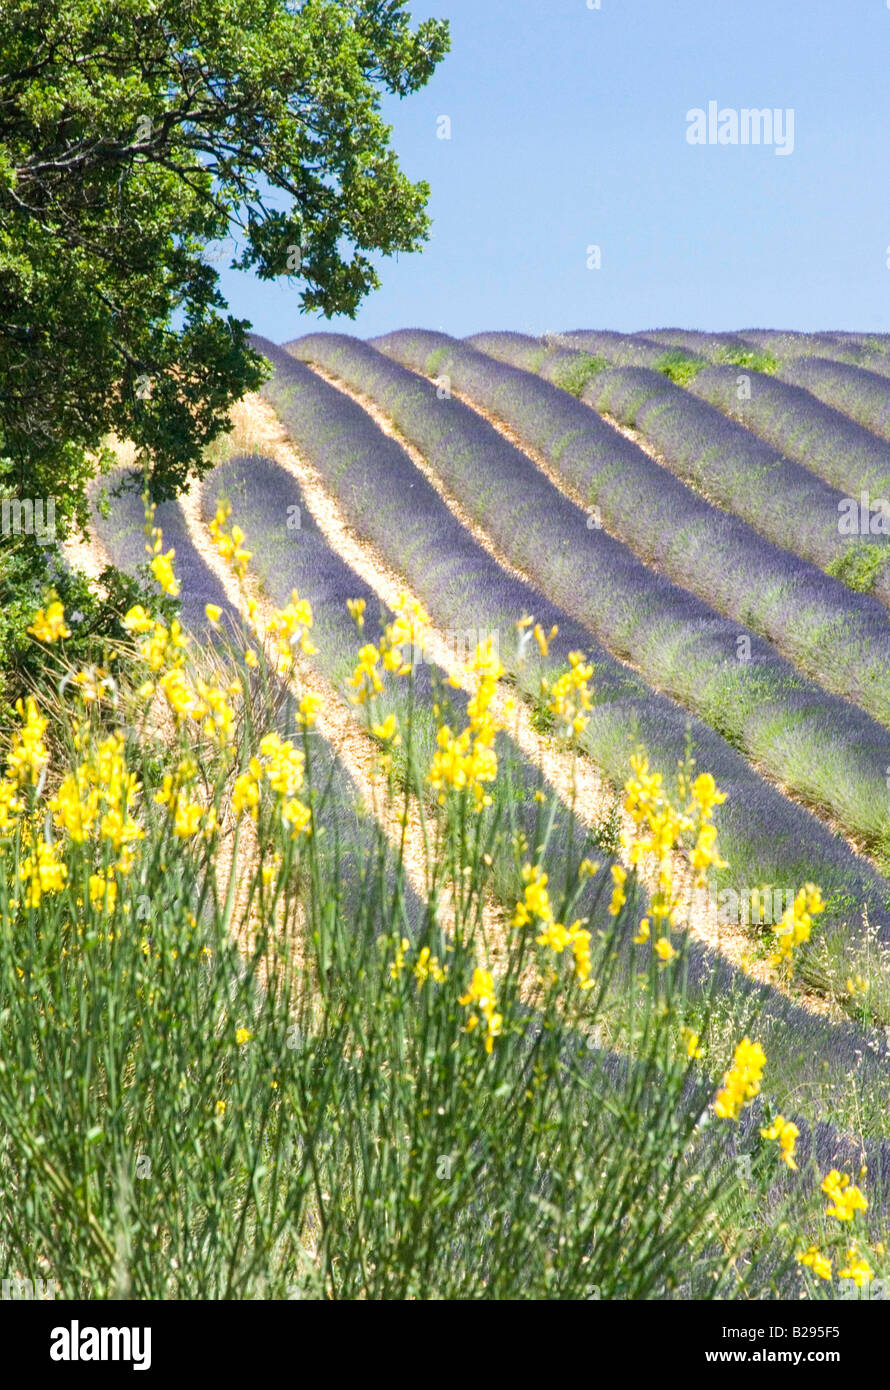 Lavender Valensole Provence France Date 28 03 2008 Ref ZB726 111651 0004 COMPULSORY CREDIT World Pictures Photoshot - Stock Image